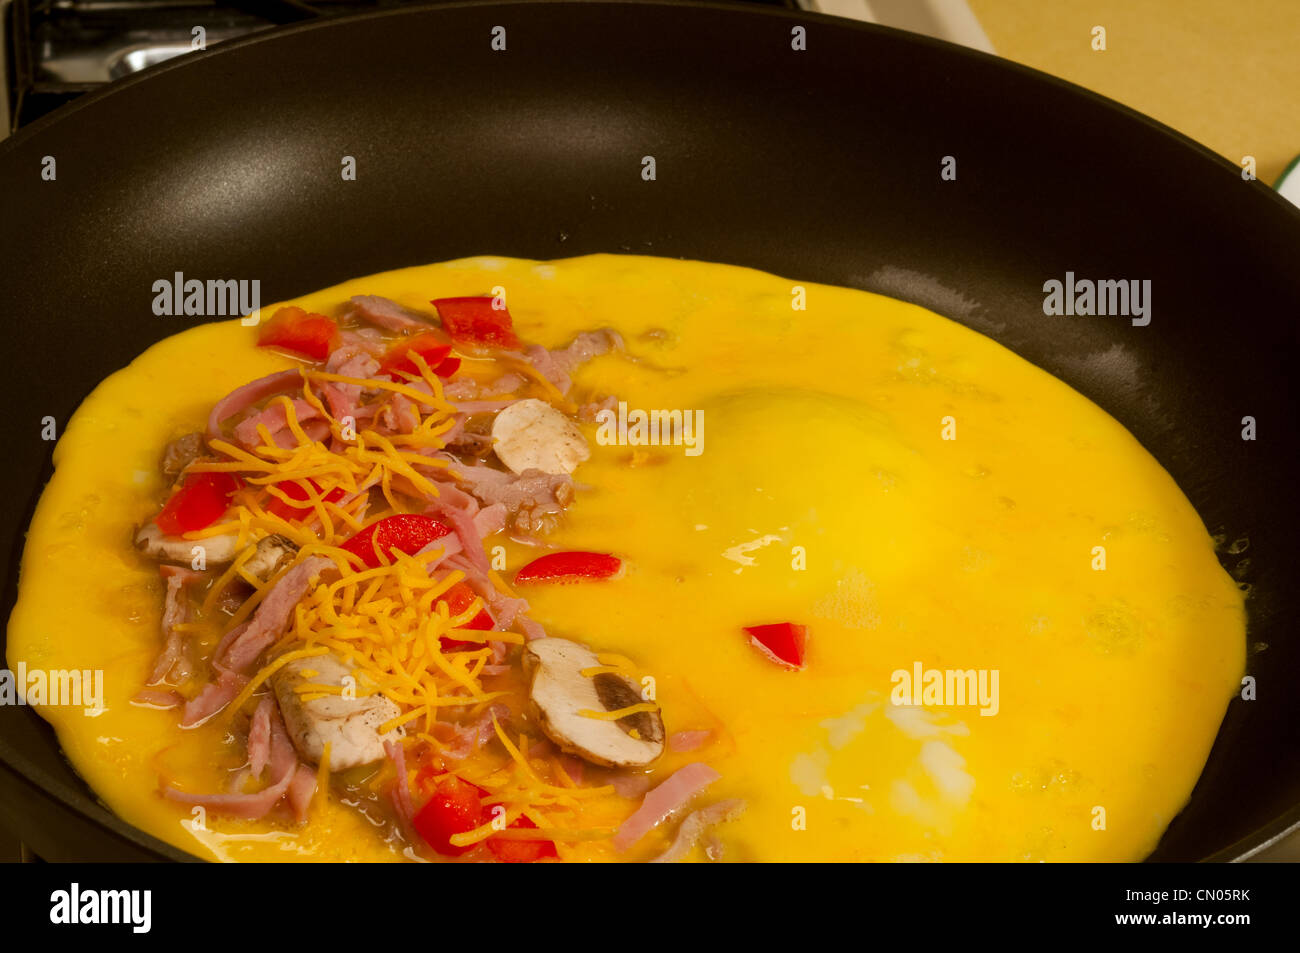 A three-egg omelet with meat, cheese, and mushrooms beginning to cook in a skillet - Stock Image